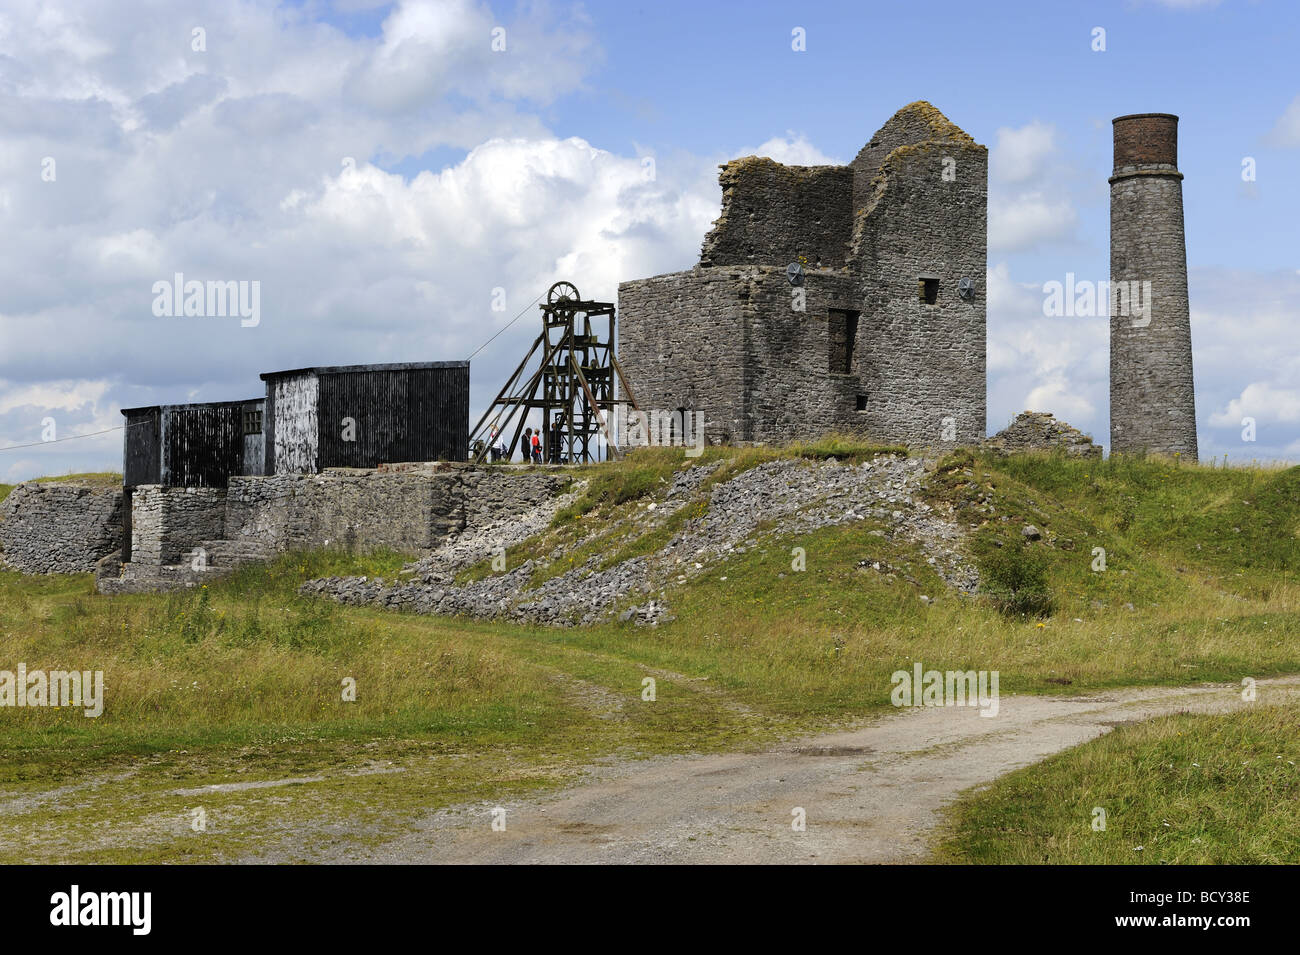 The old Magpie Mine, which mined lead, in the Peak District National Park, Derbyshire - Stock Image